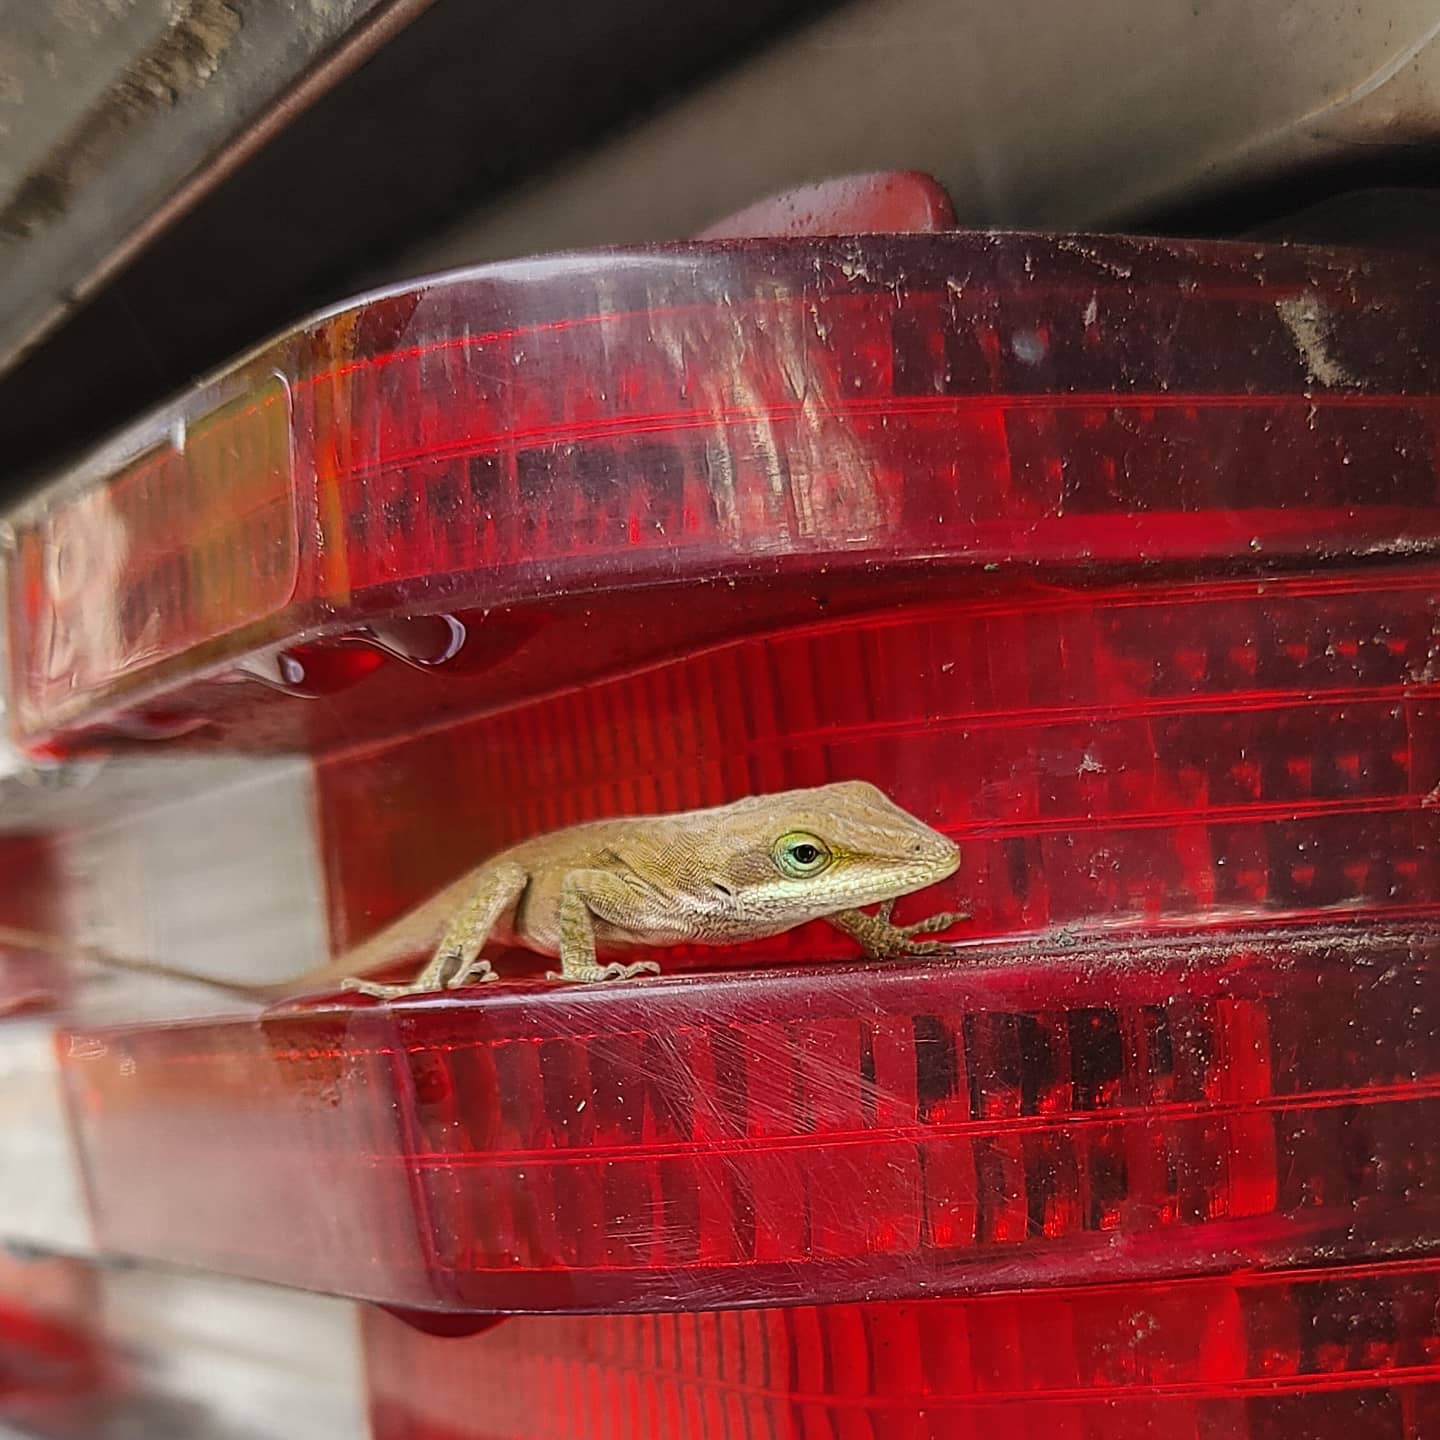 My car brings all the lizards from the yard! I don't know why this is happening, but there are at least three anoles on this car at all times lately! So weird! Obviously we are not driving it while it is a lizard habitat. Priorities!